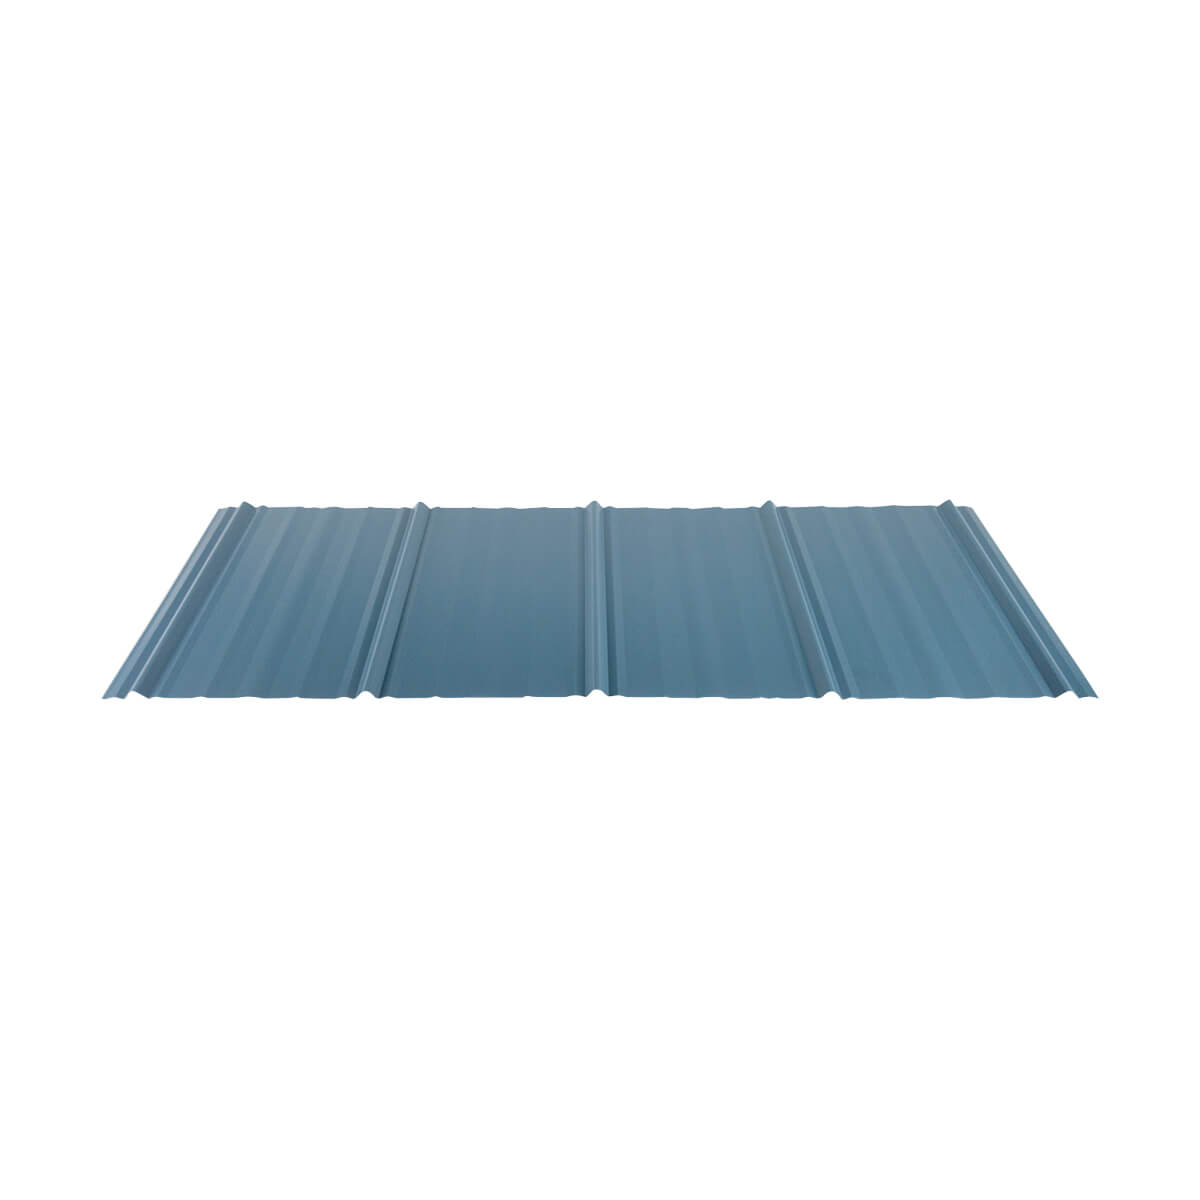 "WeatherShield 1 Metal Sheets or Panels - 32"" x 10'"